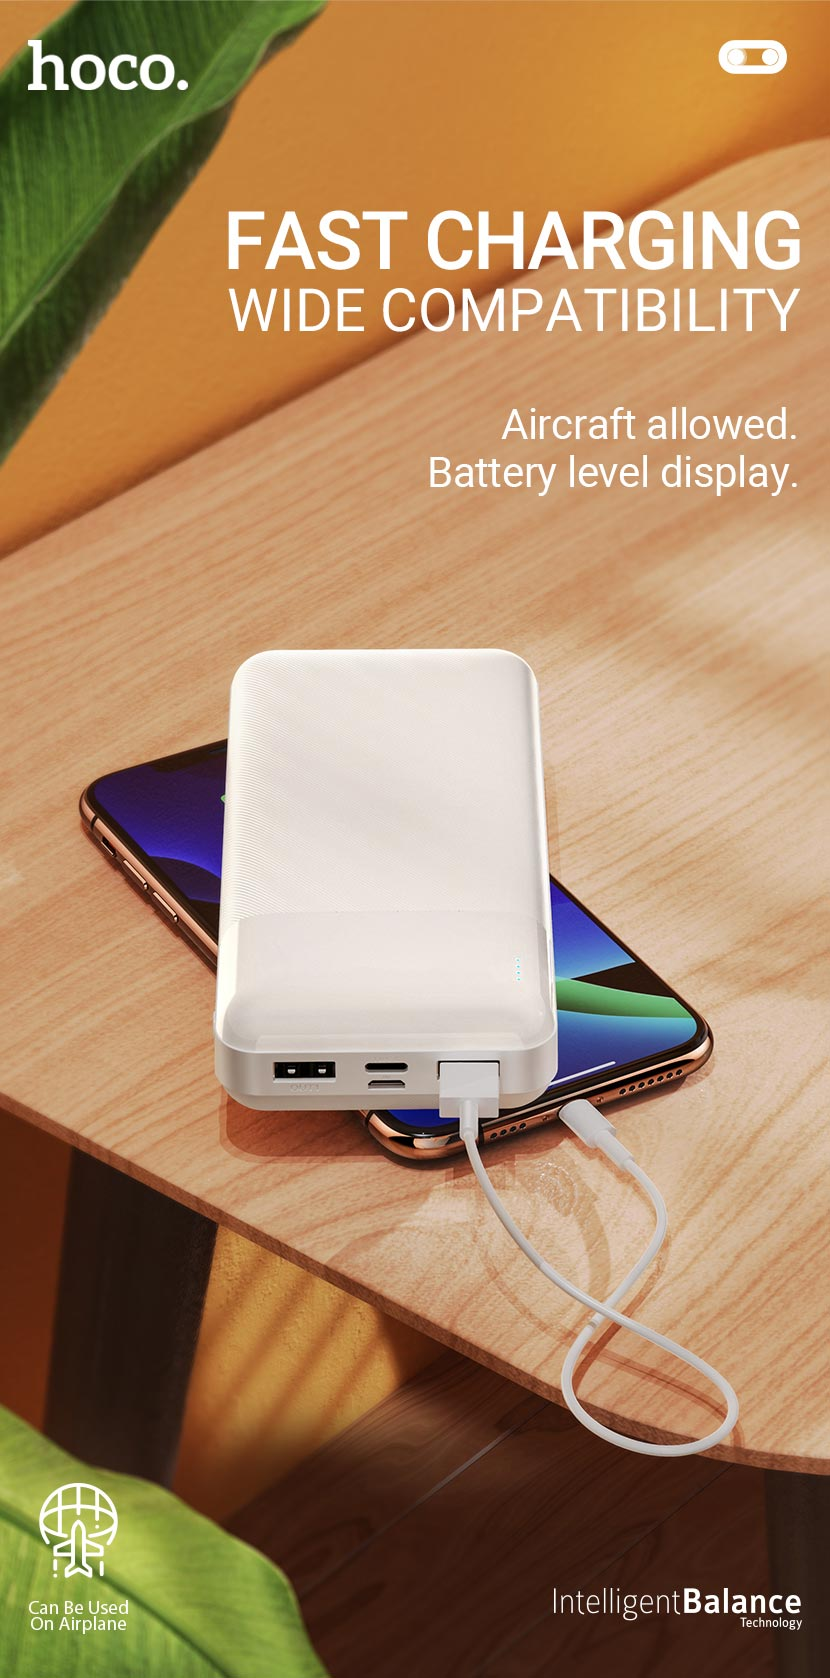 hoco news j72a easy travel power bank 20000mah fast en